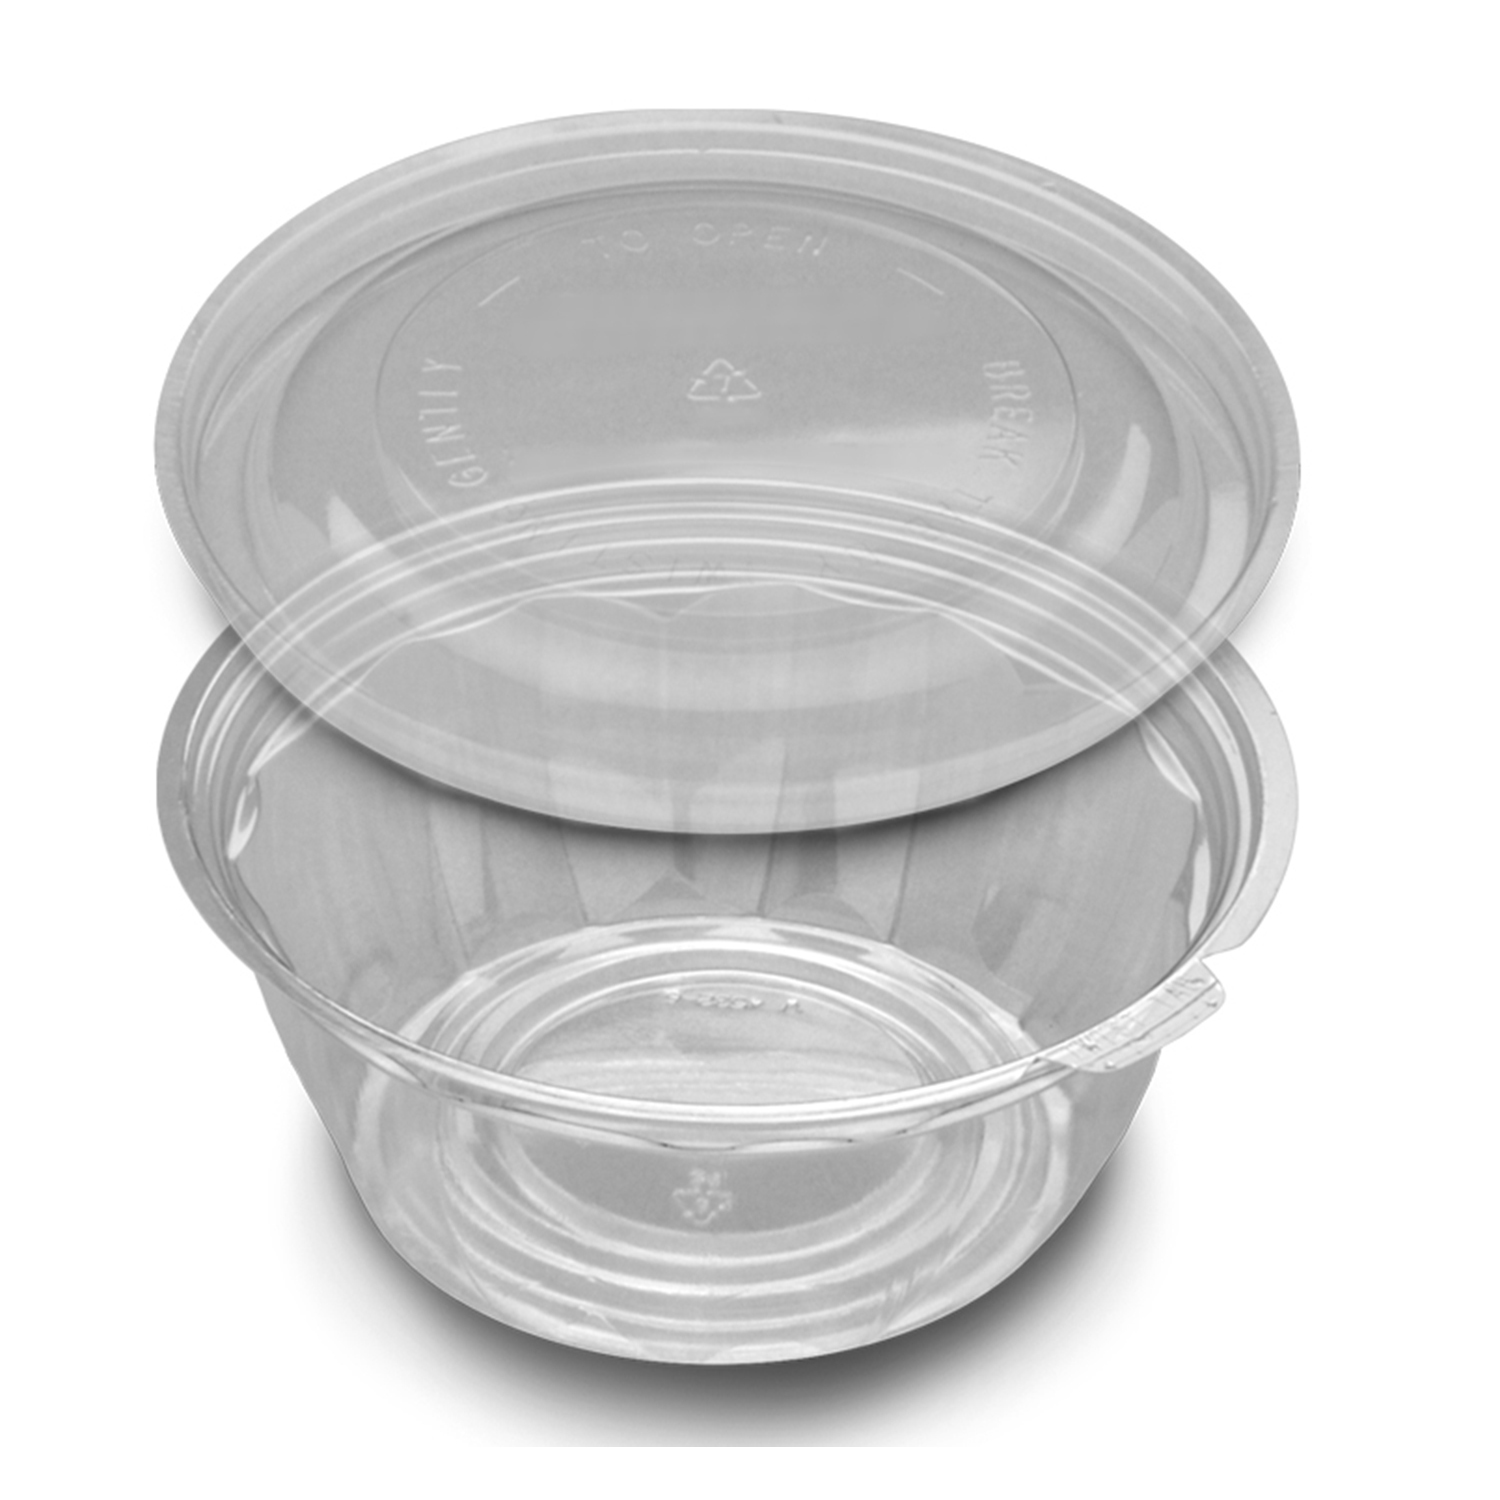 4532 32OZ JUSTFRESHBOWL/DOME 150 SETS